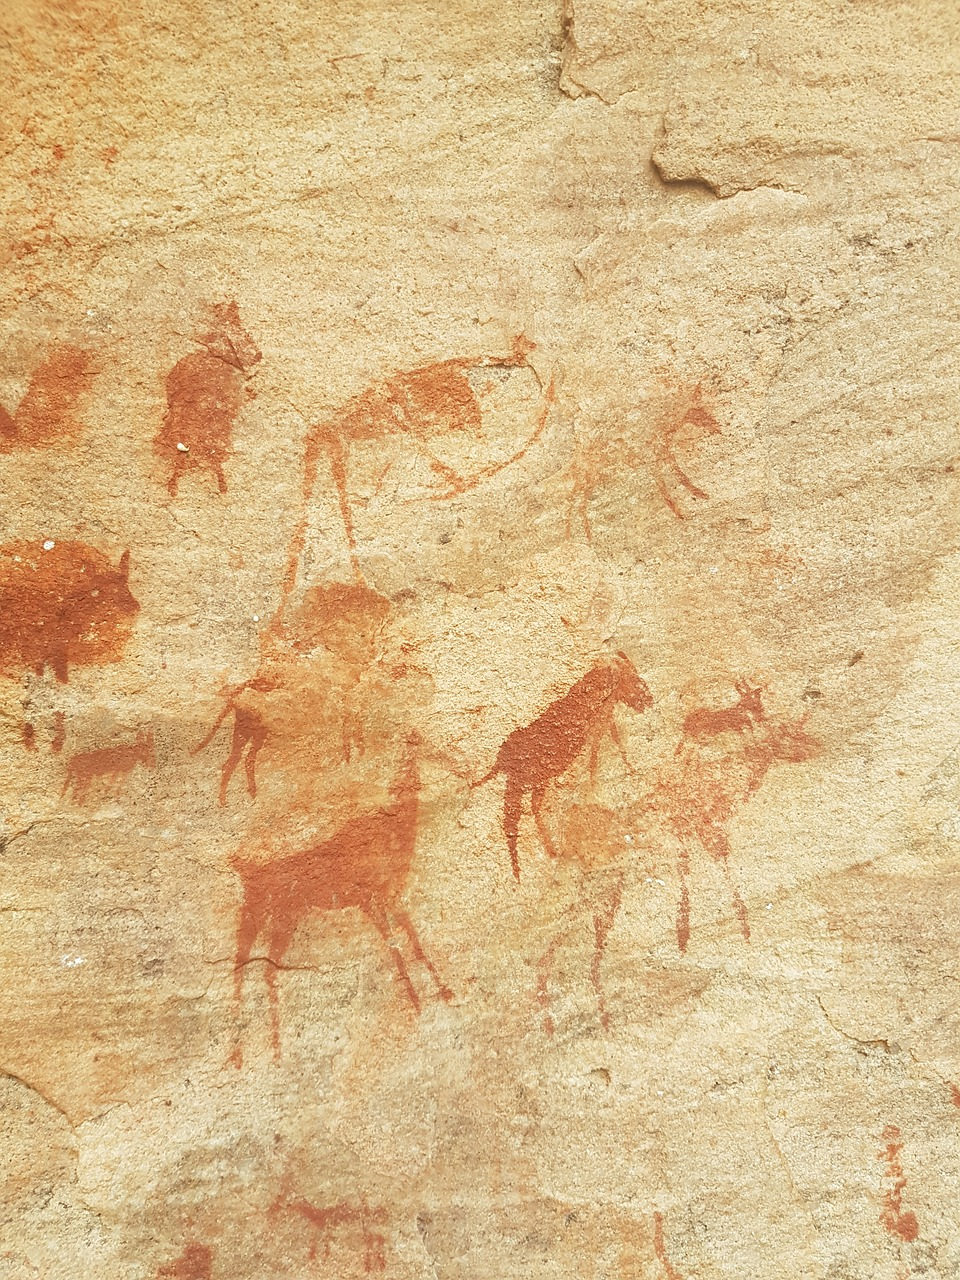 rock art painting africa free photo